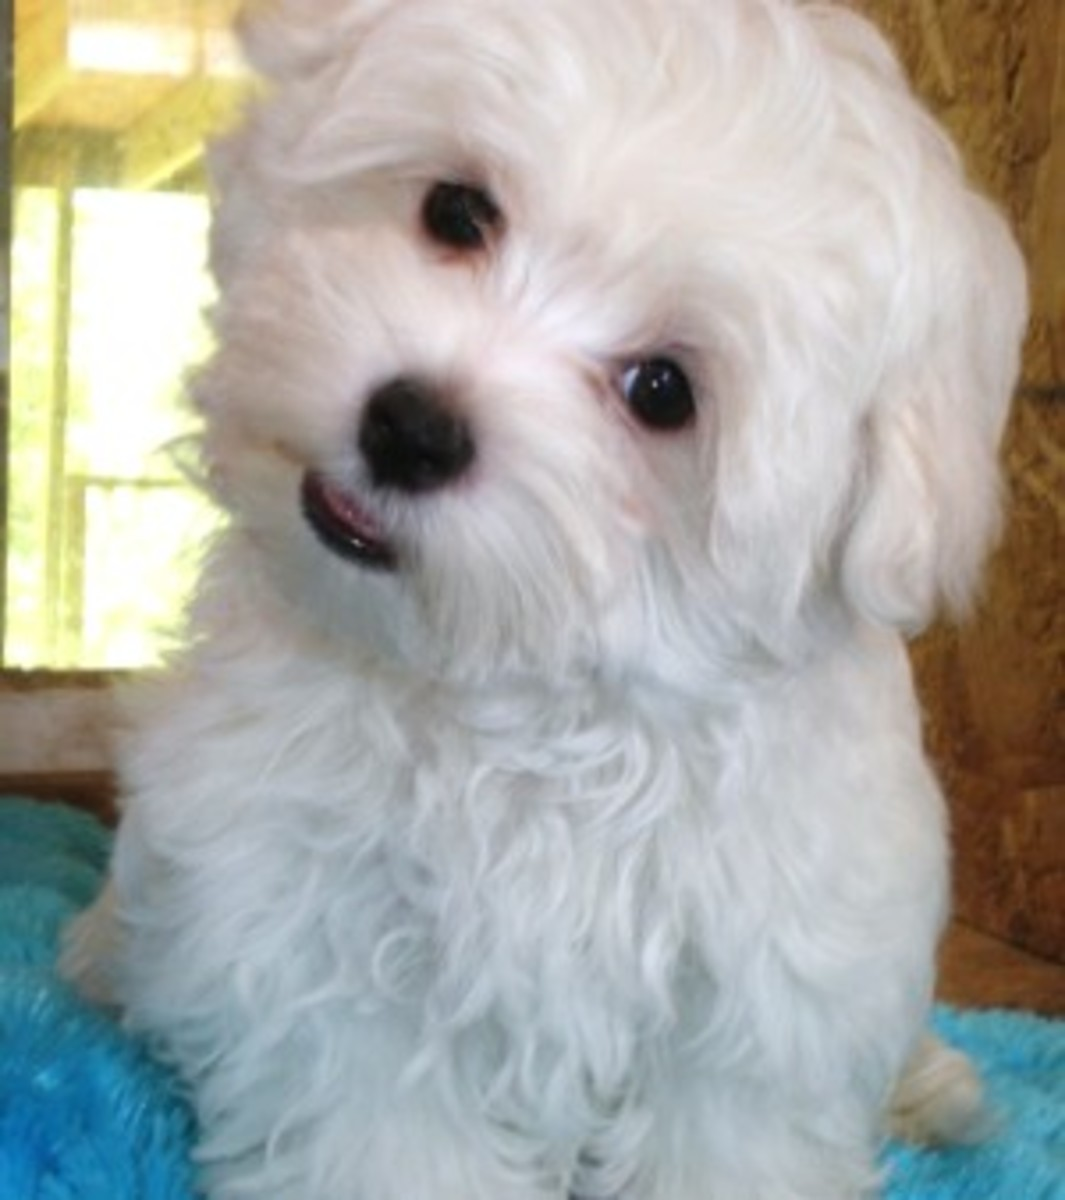 12 Week old Maltese puppy